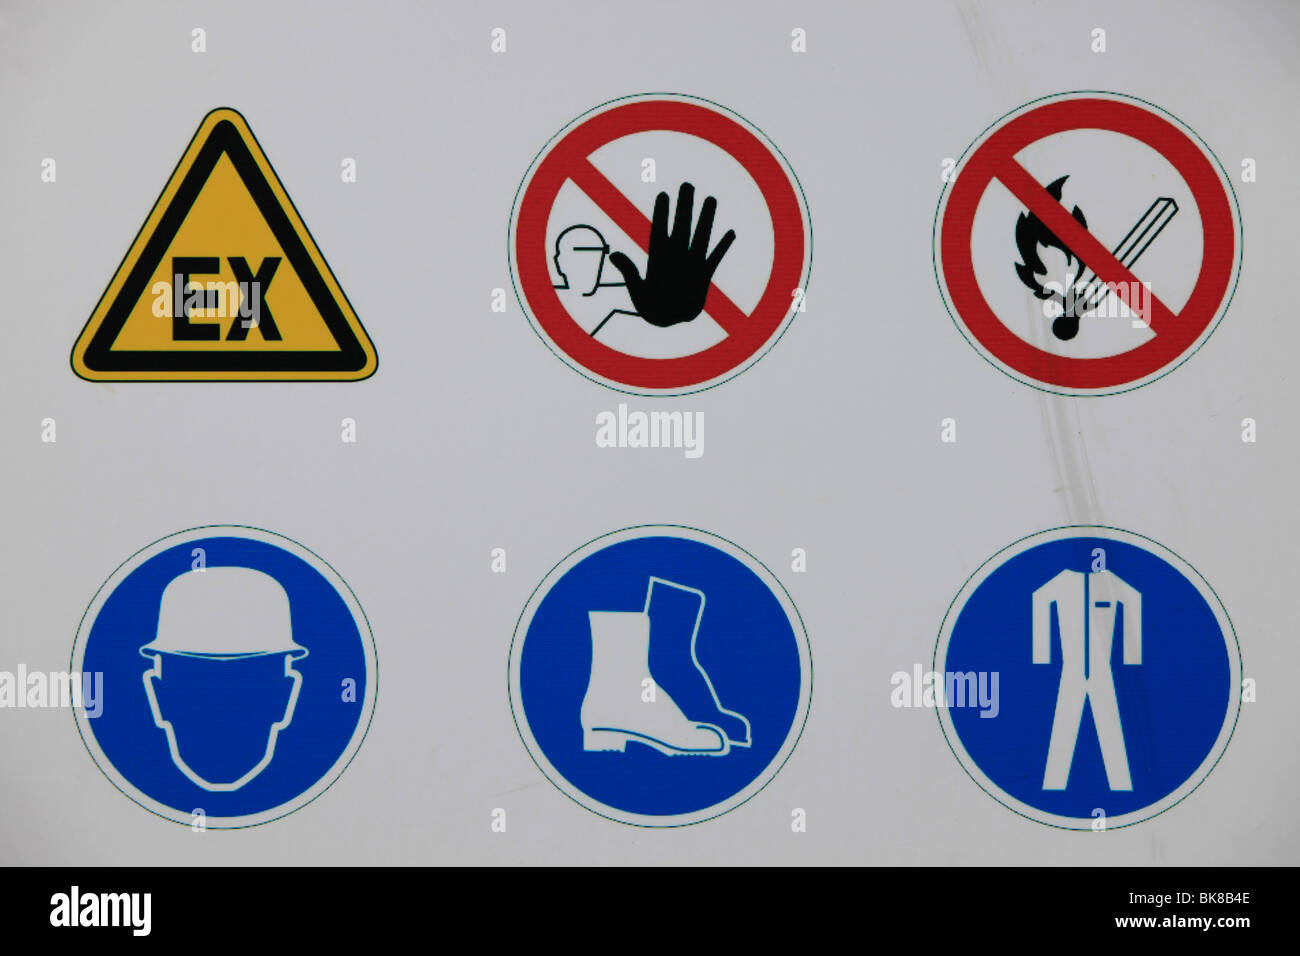 Sign for prohibitions and requirements in a heavy industry plant - Stock Image